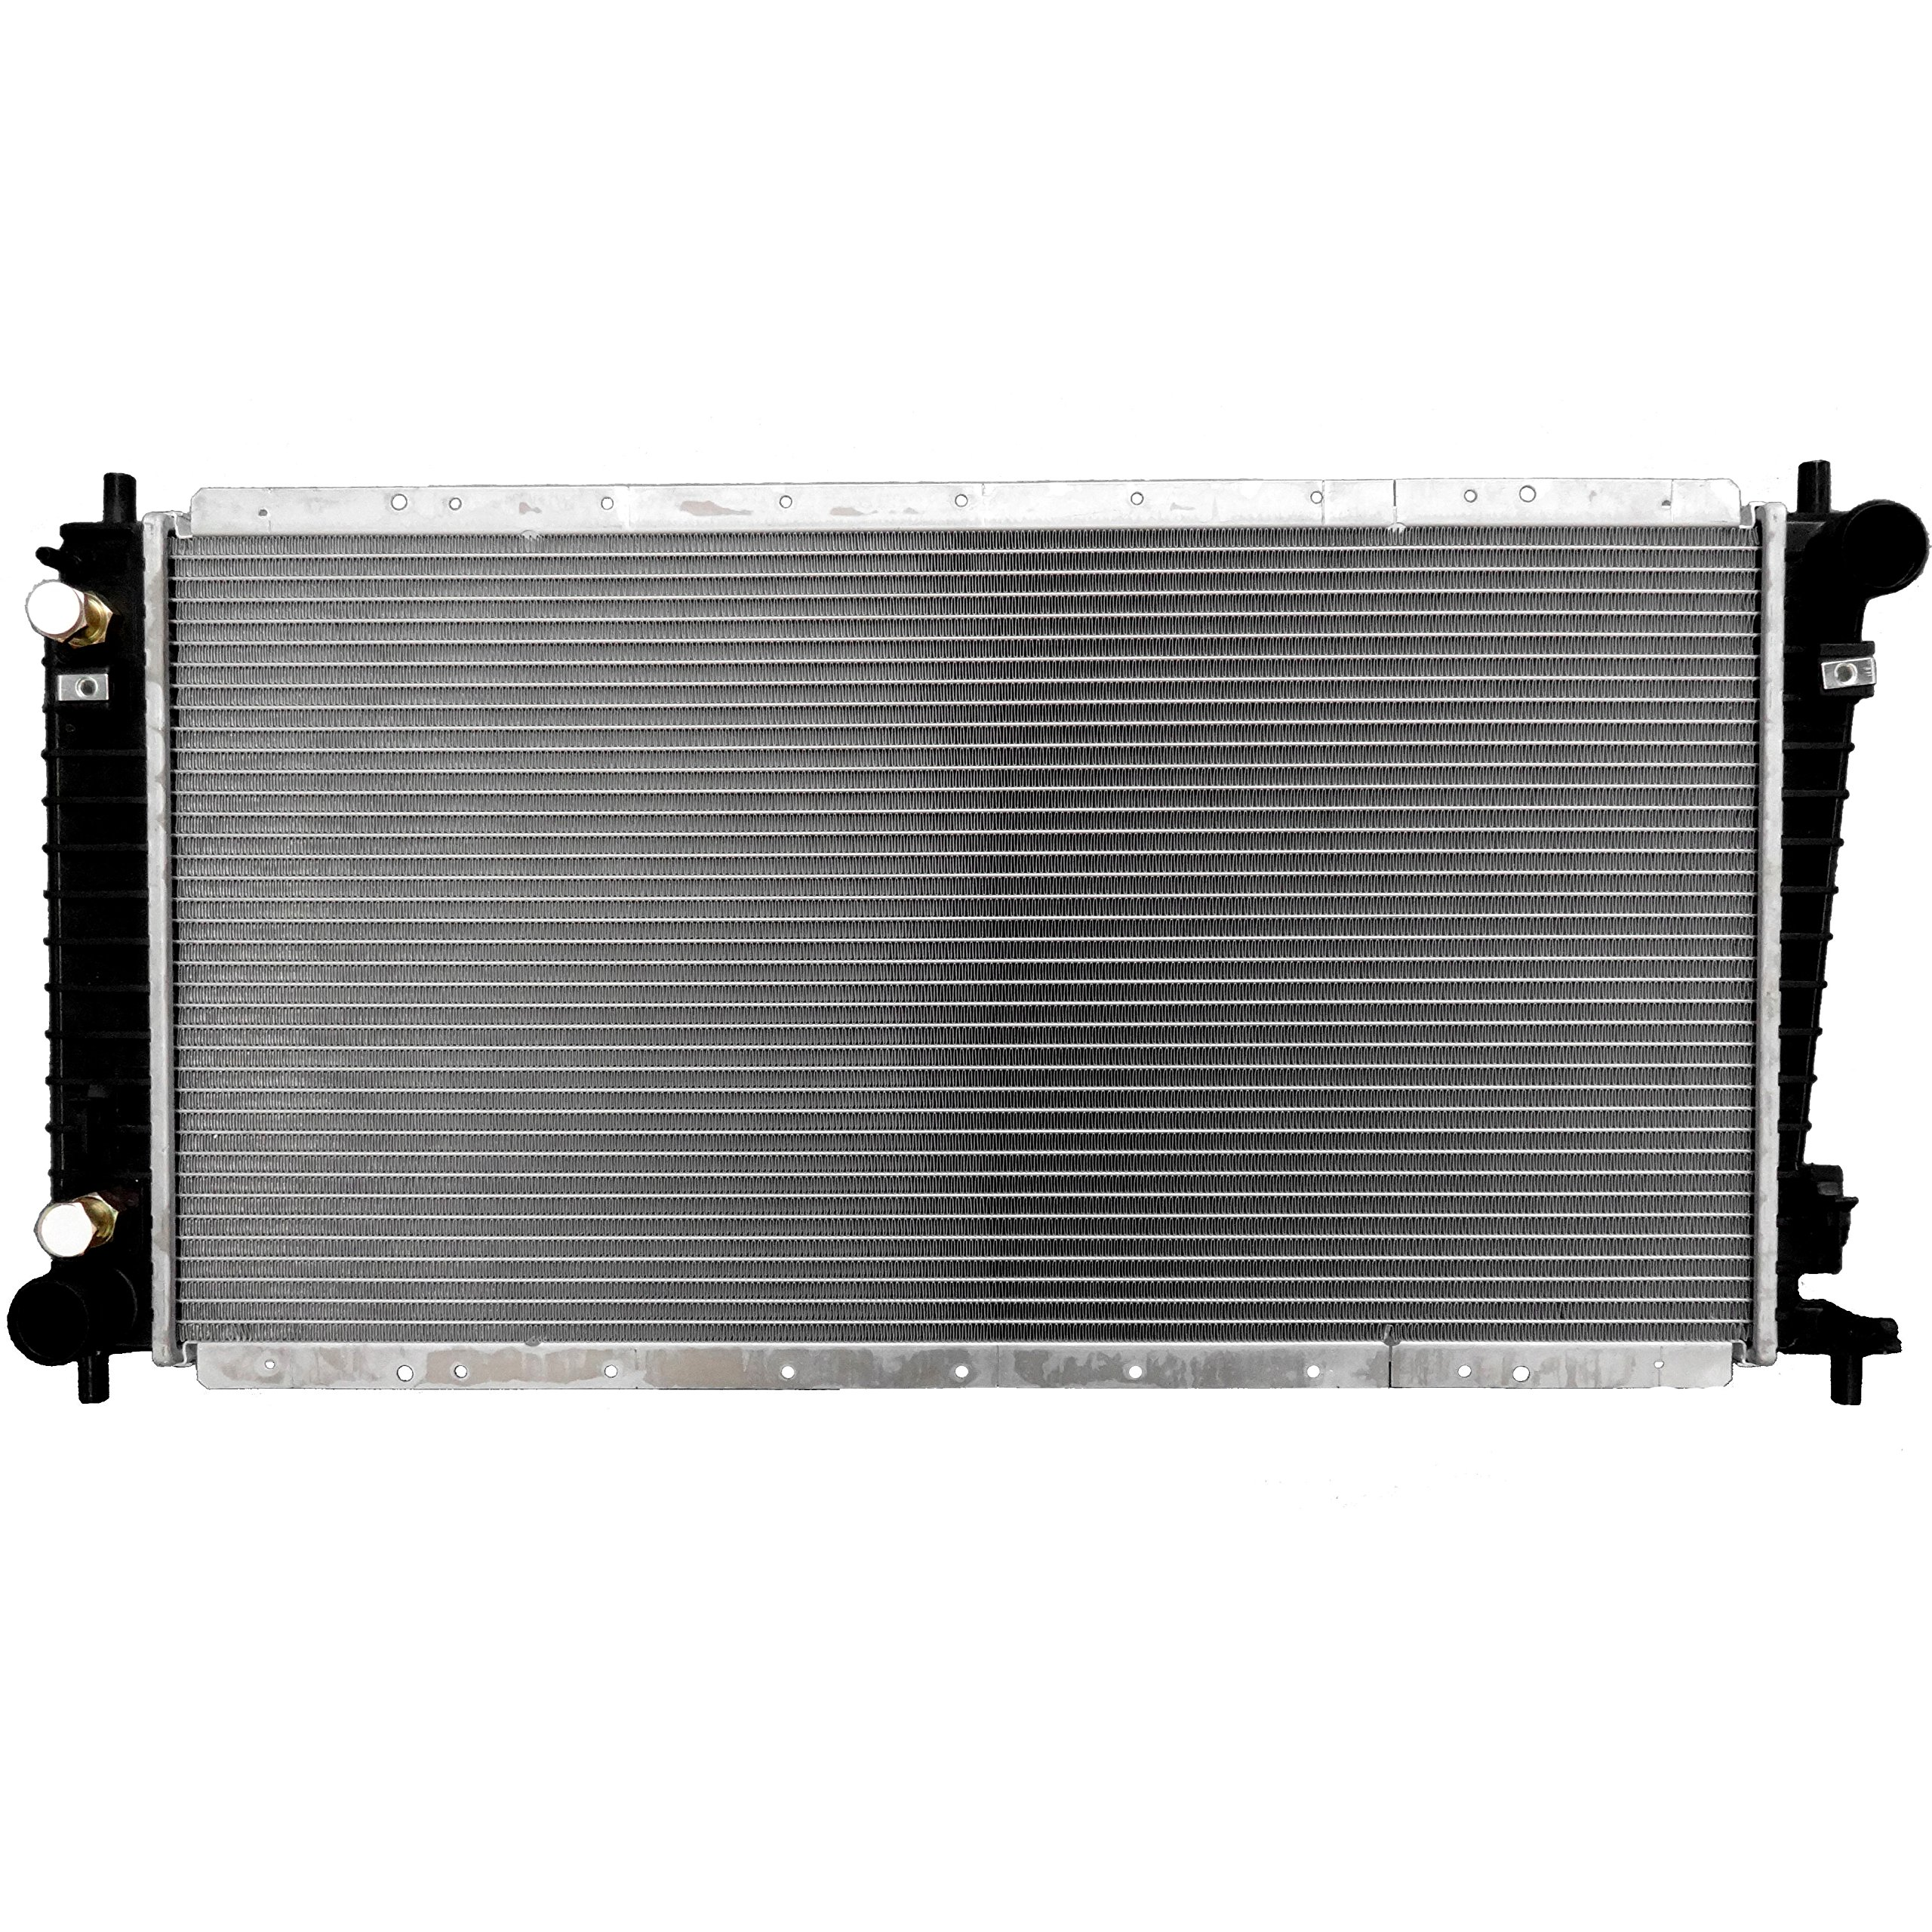 SCITOO Radiator 1831 for 1997 1998 Ford Expedition/F150 XLT GAS 4.6L Ford F-150 F-250 GAS 4.6L by Scitoo